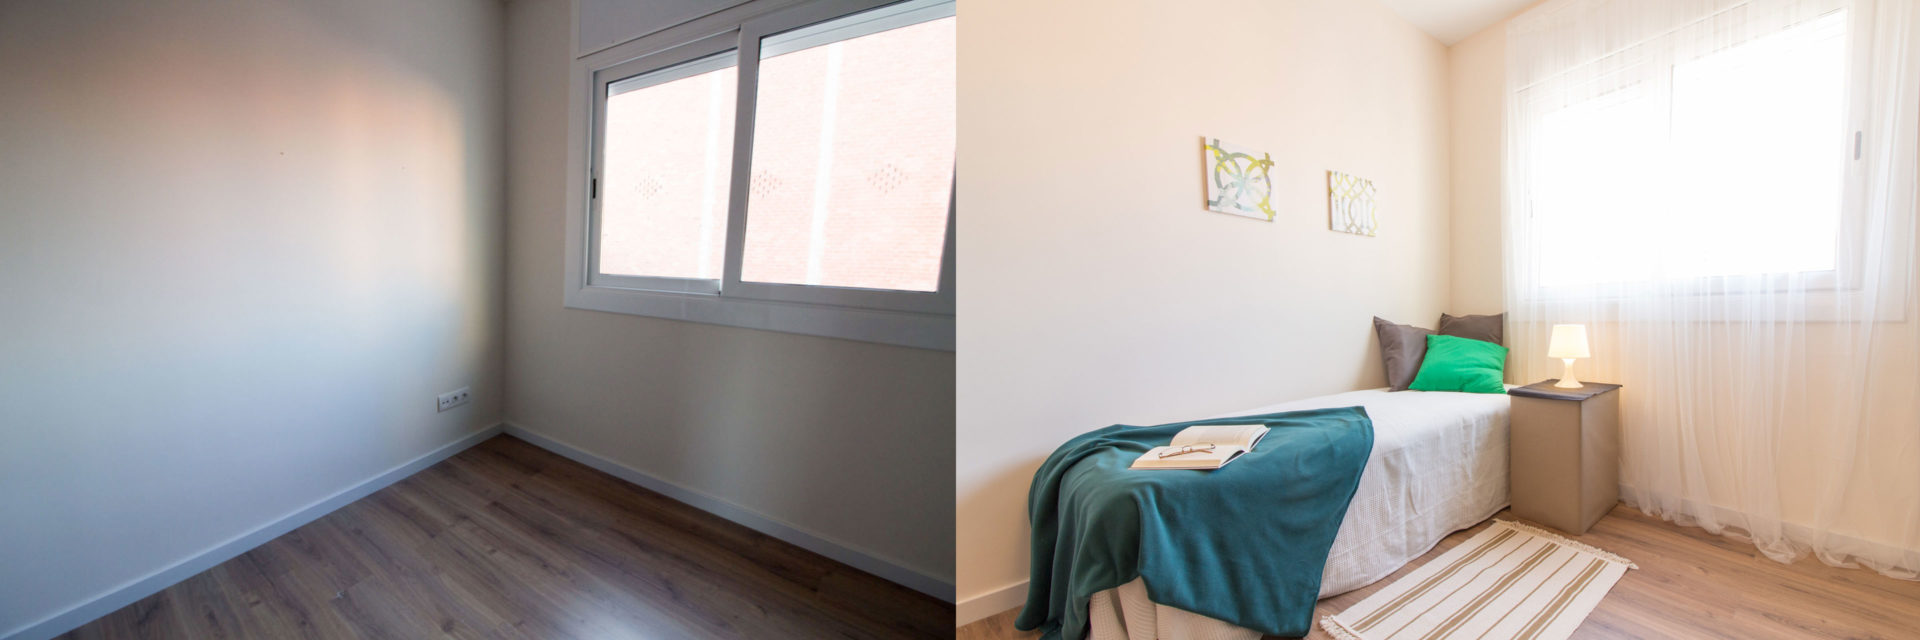 home staging antes-despues habitacion